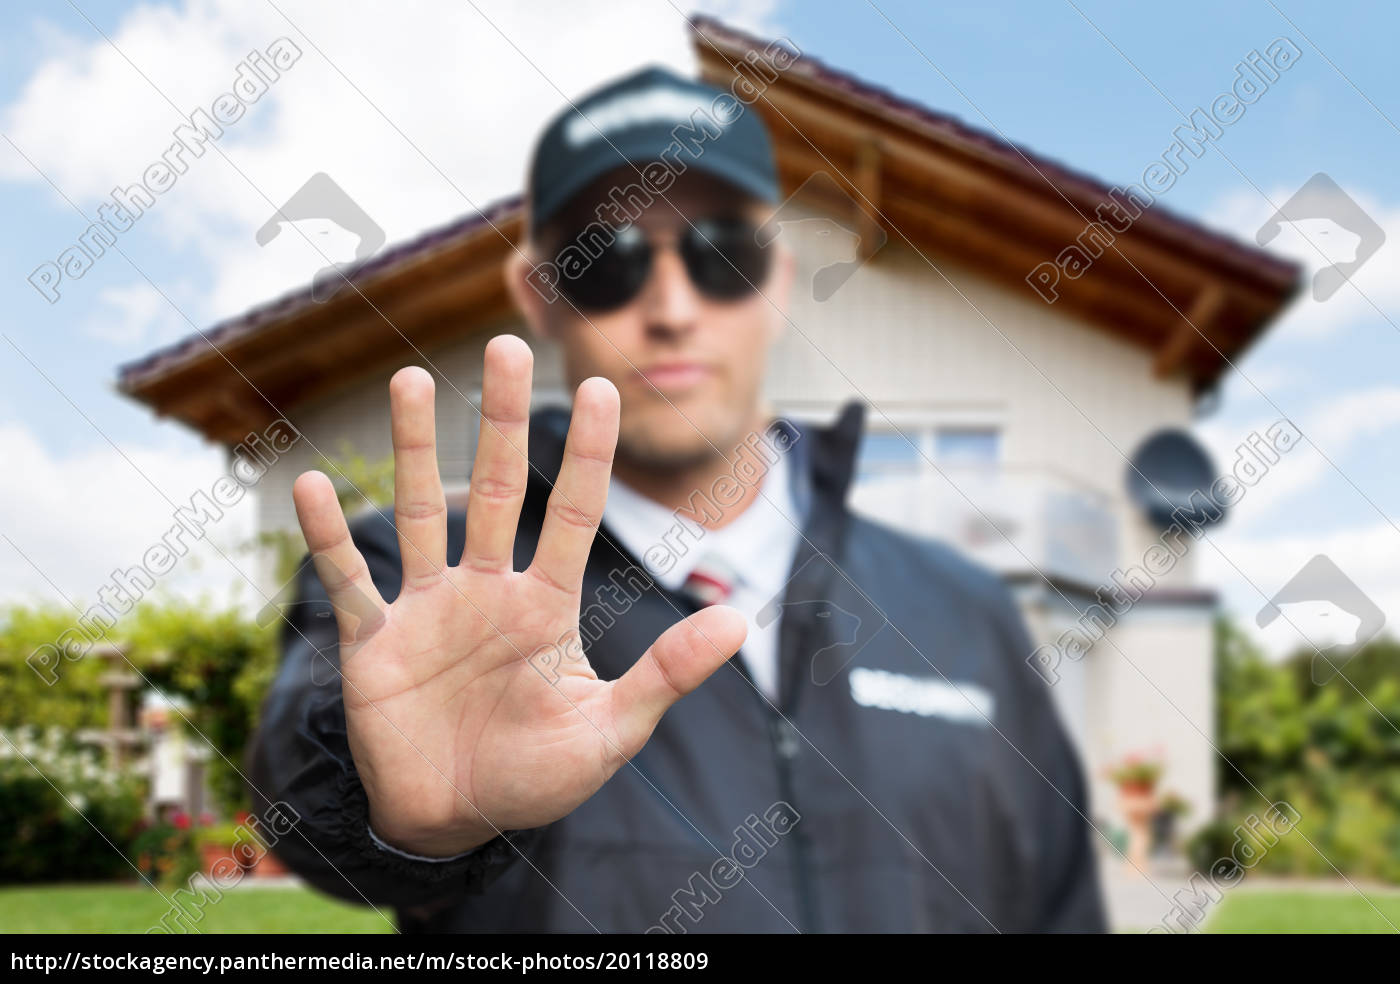 male, security, guard, making, stop, gesture - 20118809